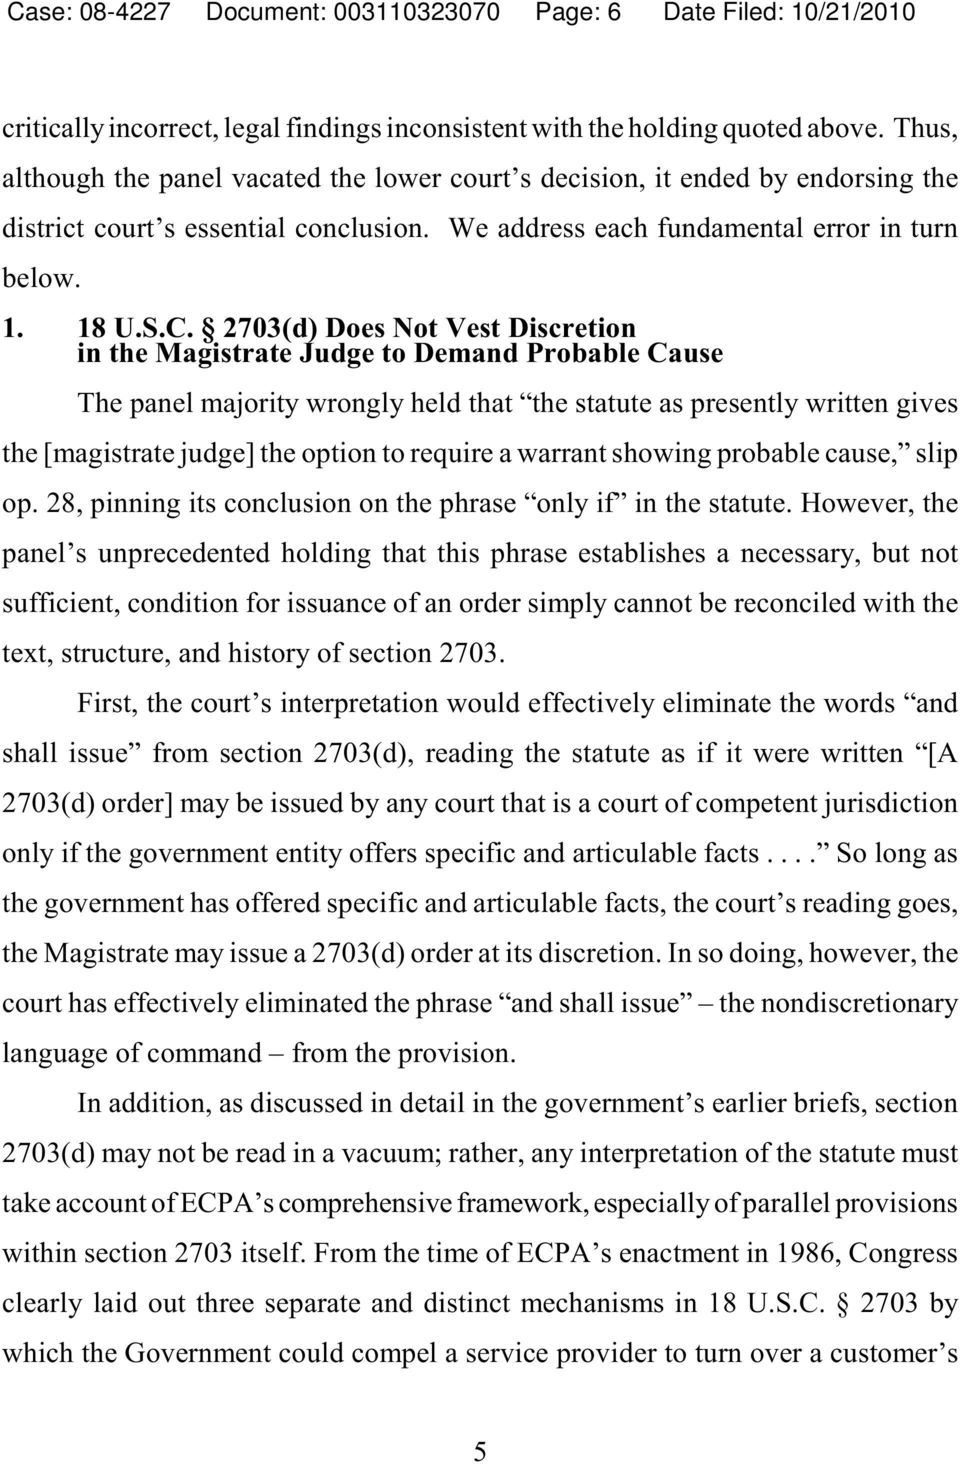 2703(d) Does Not Vest Discretion in the Magistrate Judge to Demand Probable Cause The panel majority wrongly held that the statute as presently written gives the [magistrate judge] the option to